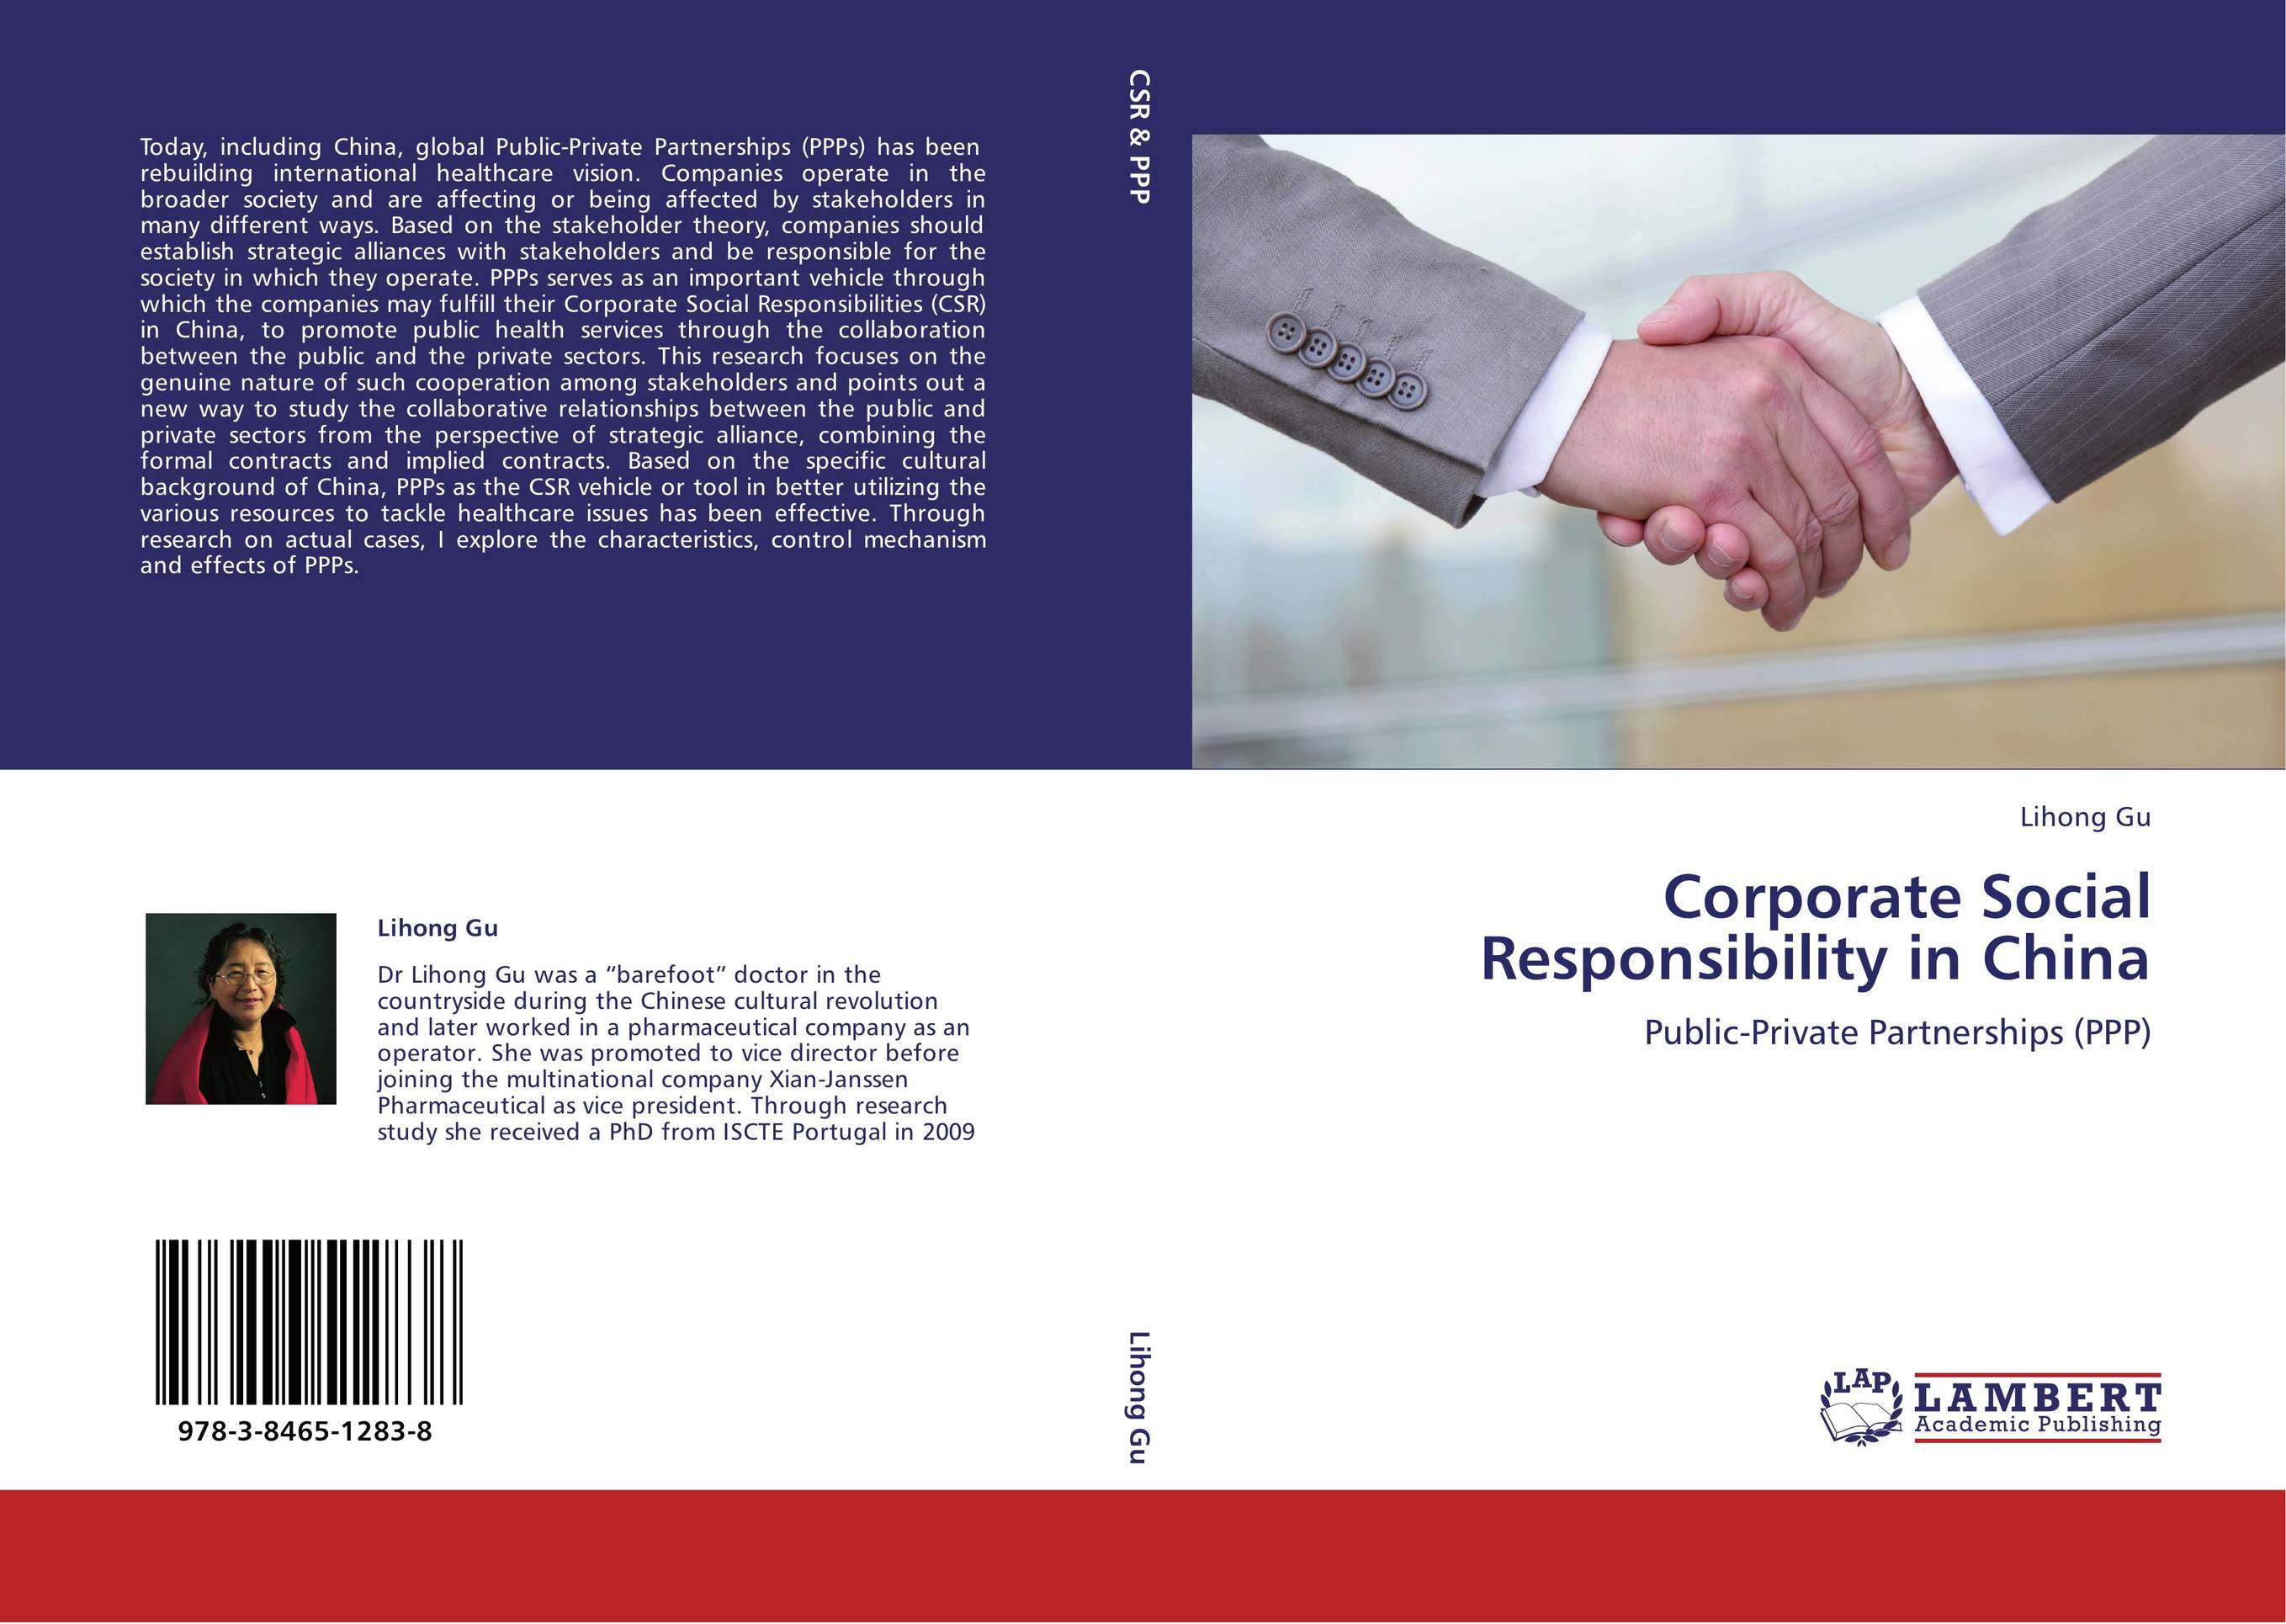 the importance of corporate social responsibility and Corporate social responsibility and sustainable business a guide to leadership tasks and functions alessia d'amato sybil henderson sue florence.